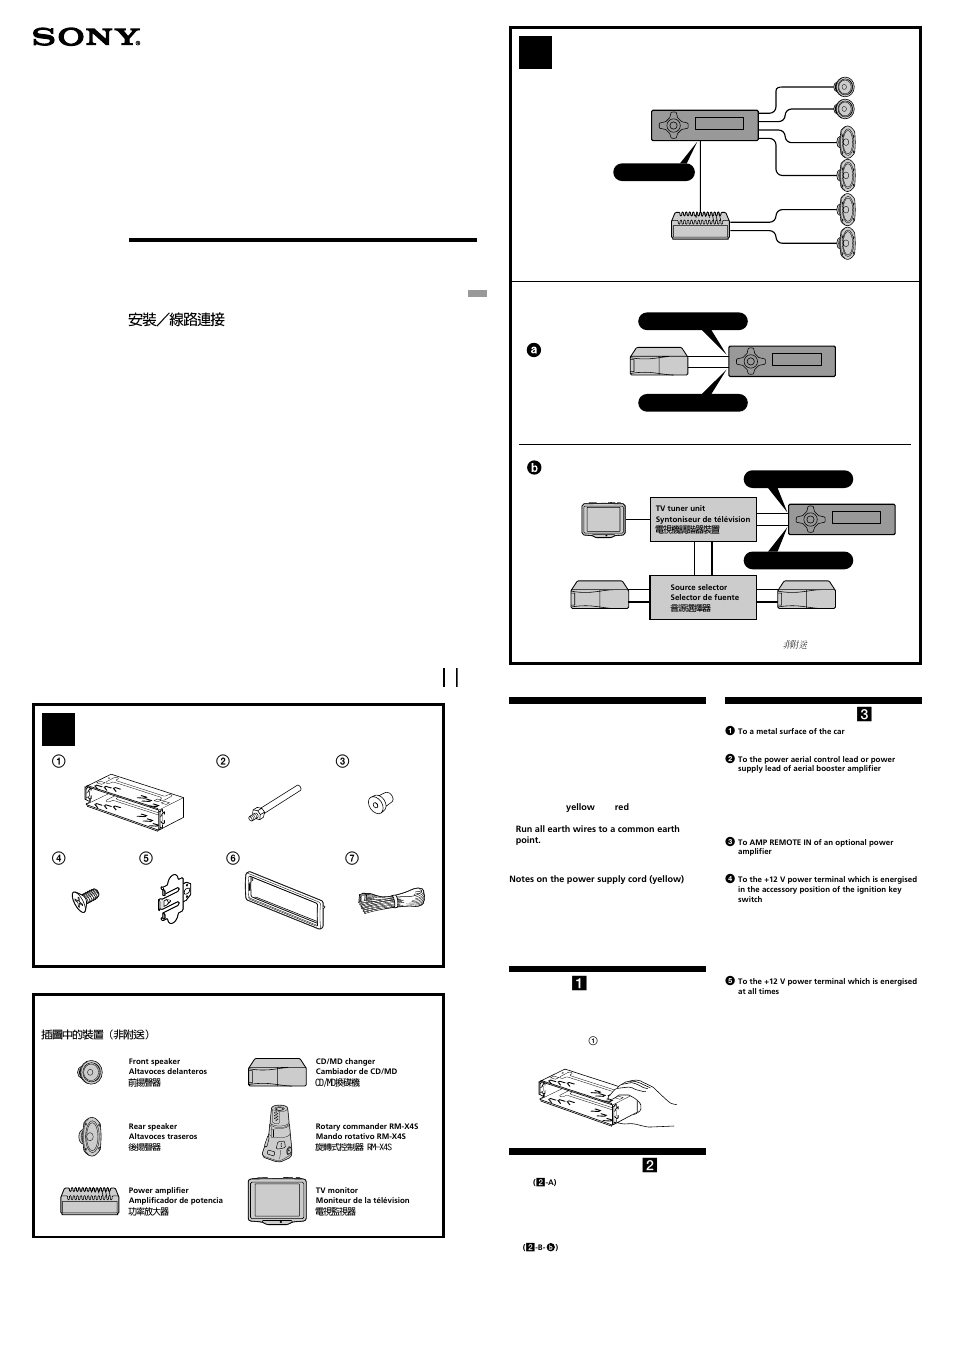 sony xr ca620x page1?resize\=665%2C945 alpine stereo wiring diagram alpine wiring diagrams sony stereo wire harness diagram at suagrazia.org